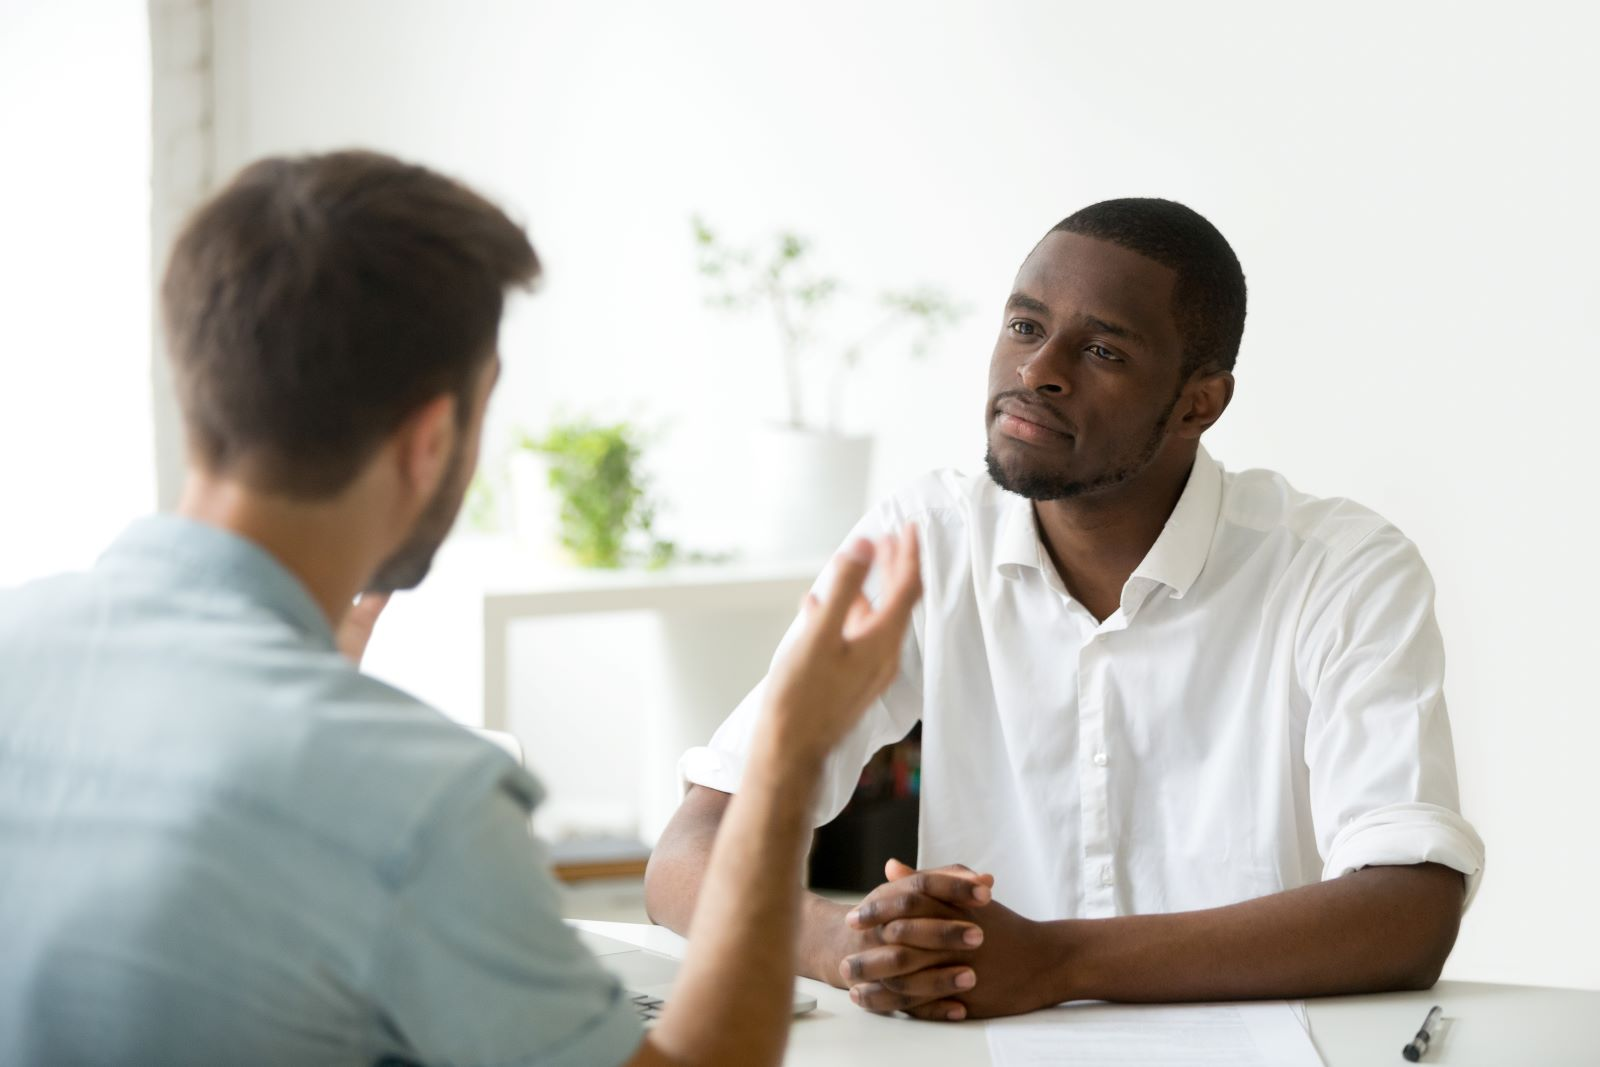 Life coach talking with a client